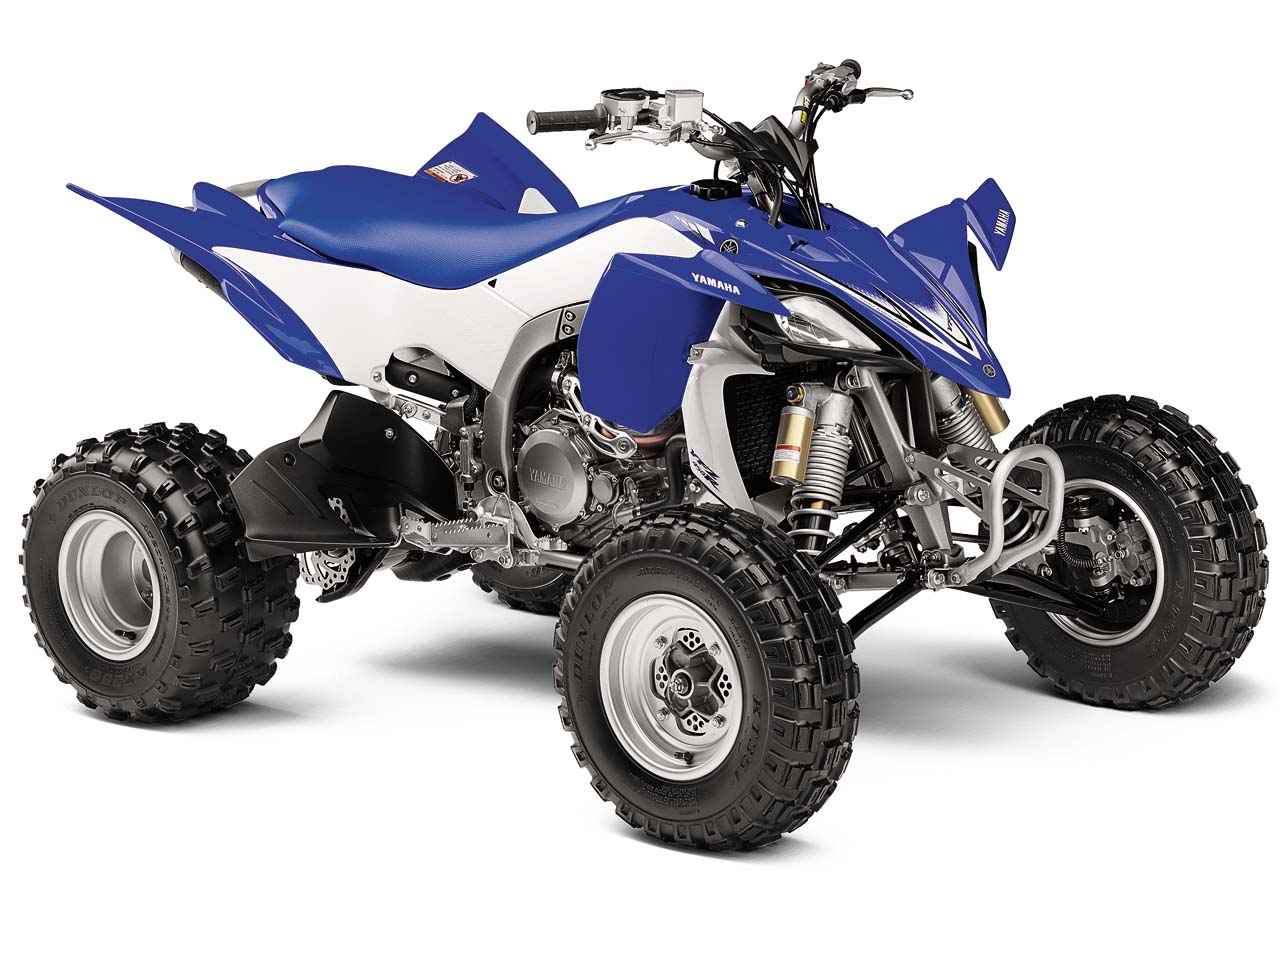 yamaha announces 2011 yfz450r and yfz450x sport atvs atv